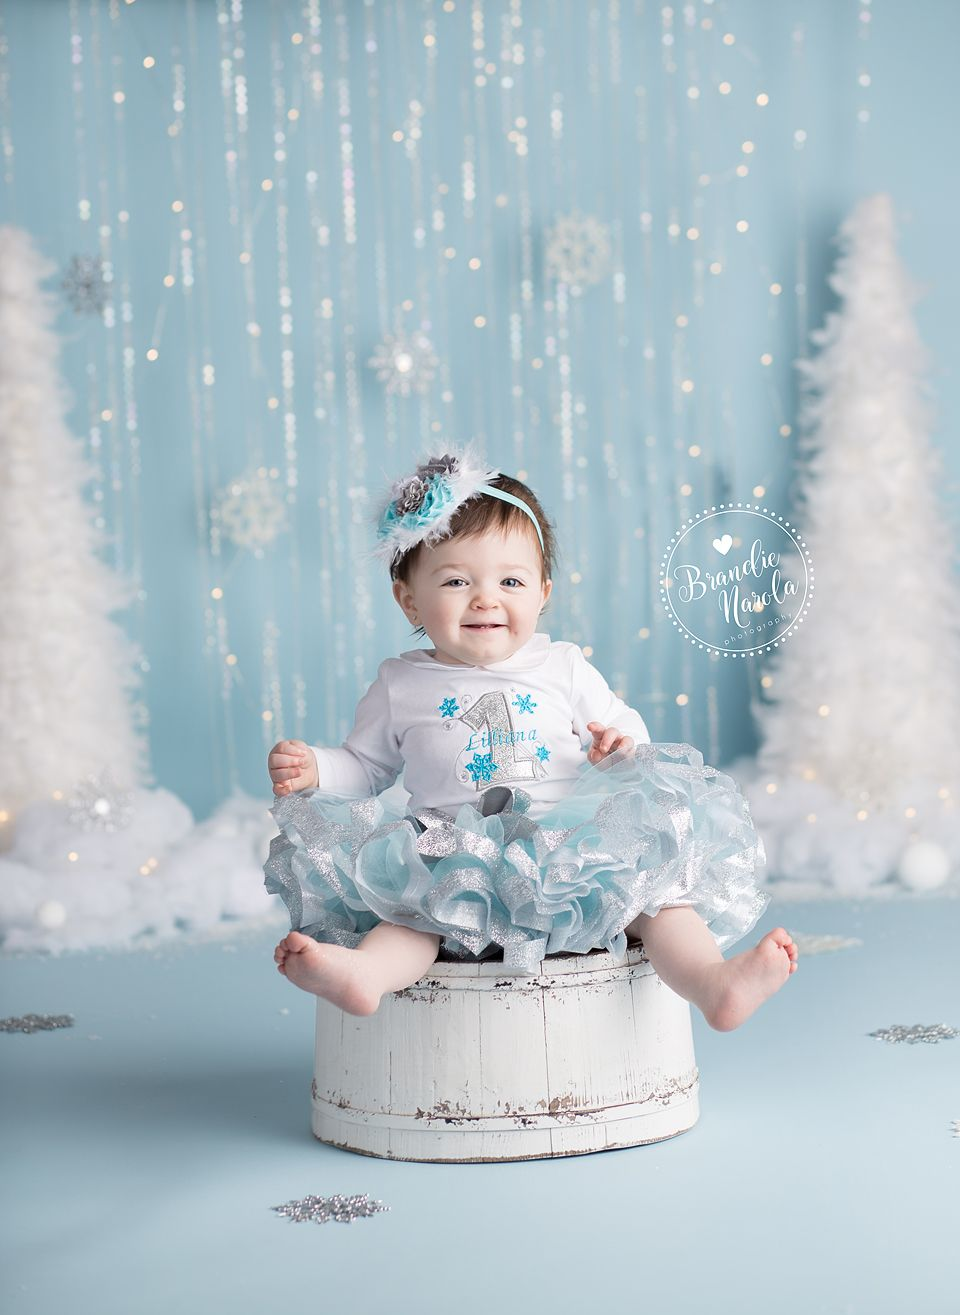 Winter Wonderland Baby Cake Smash Photos By Brandie Narola